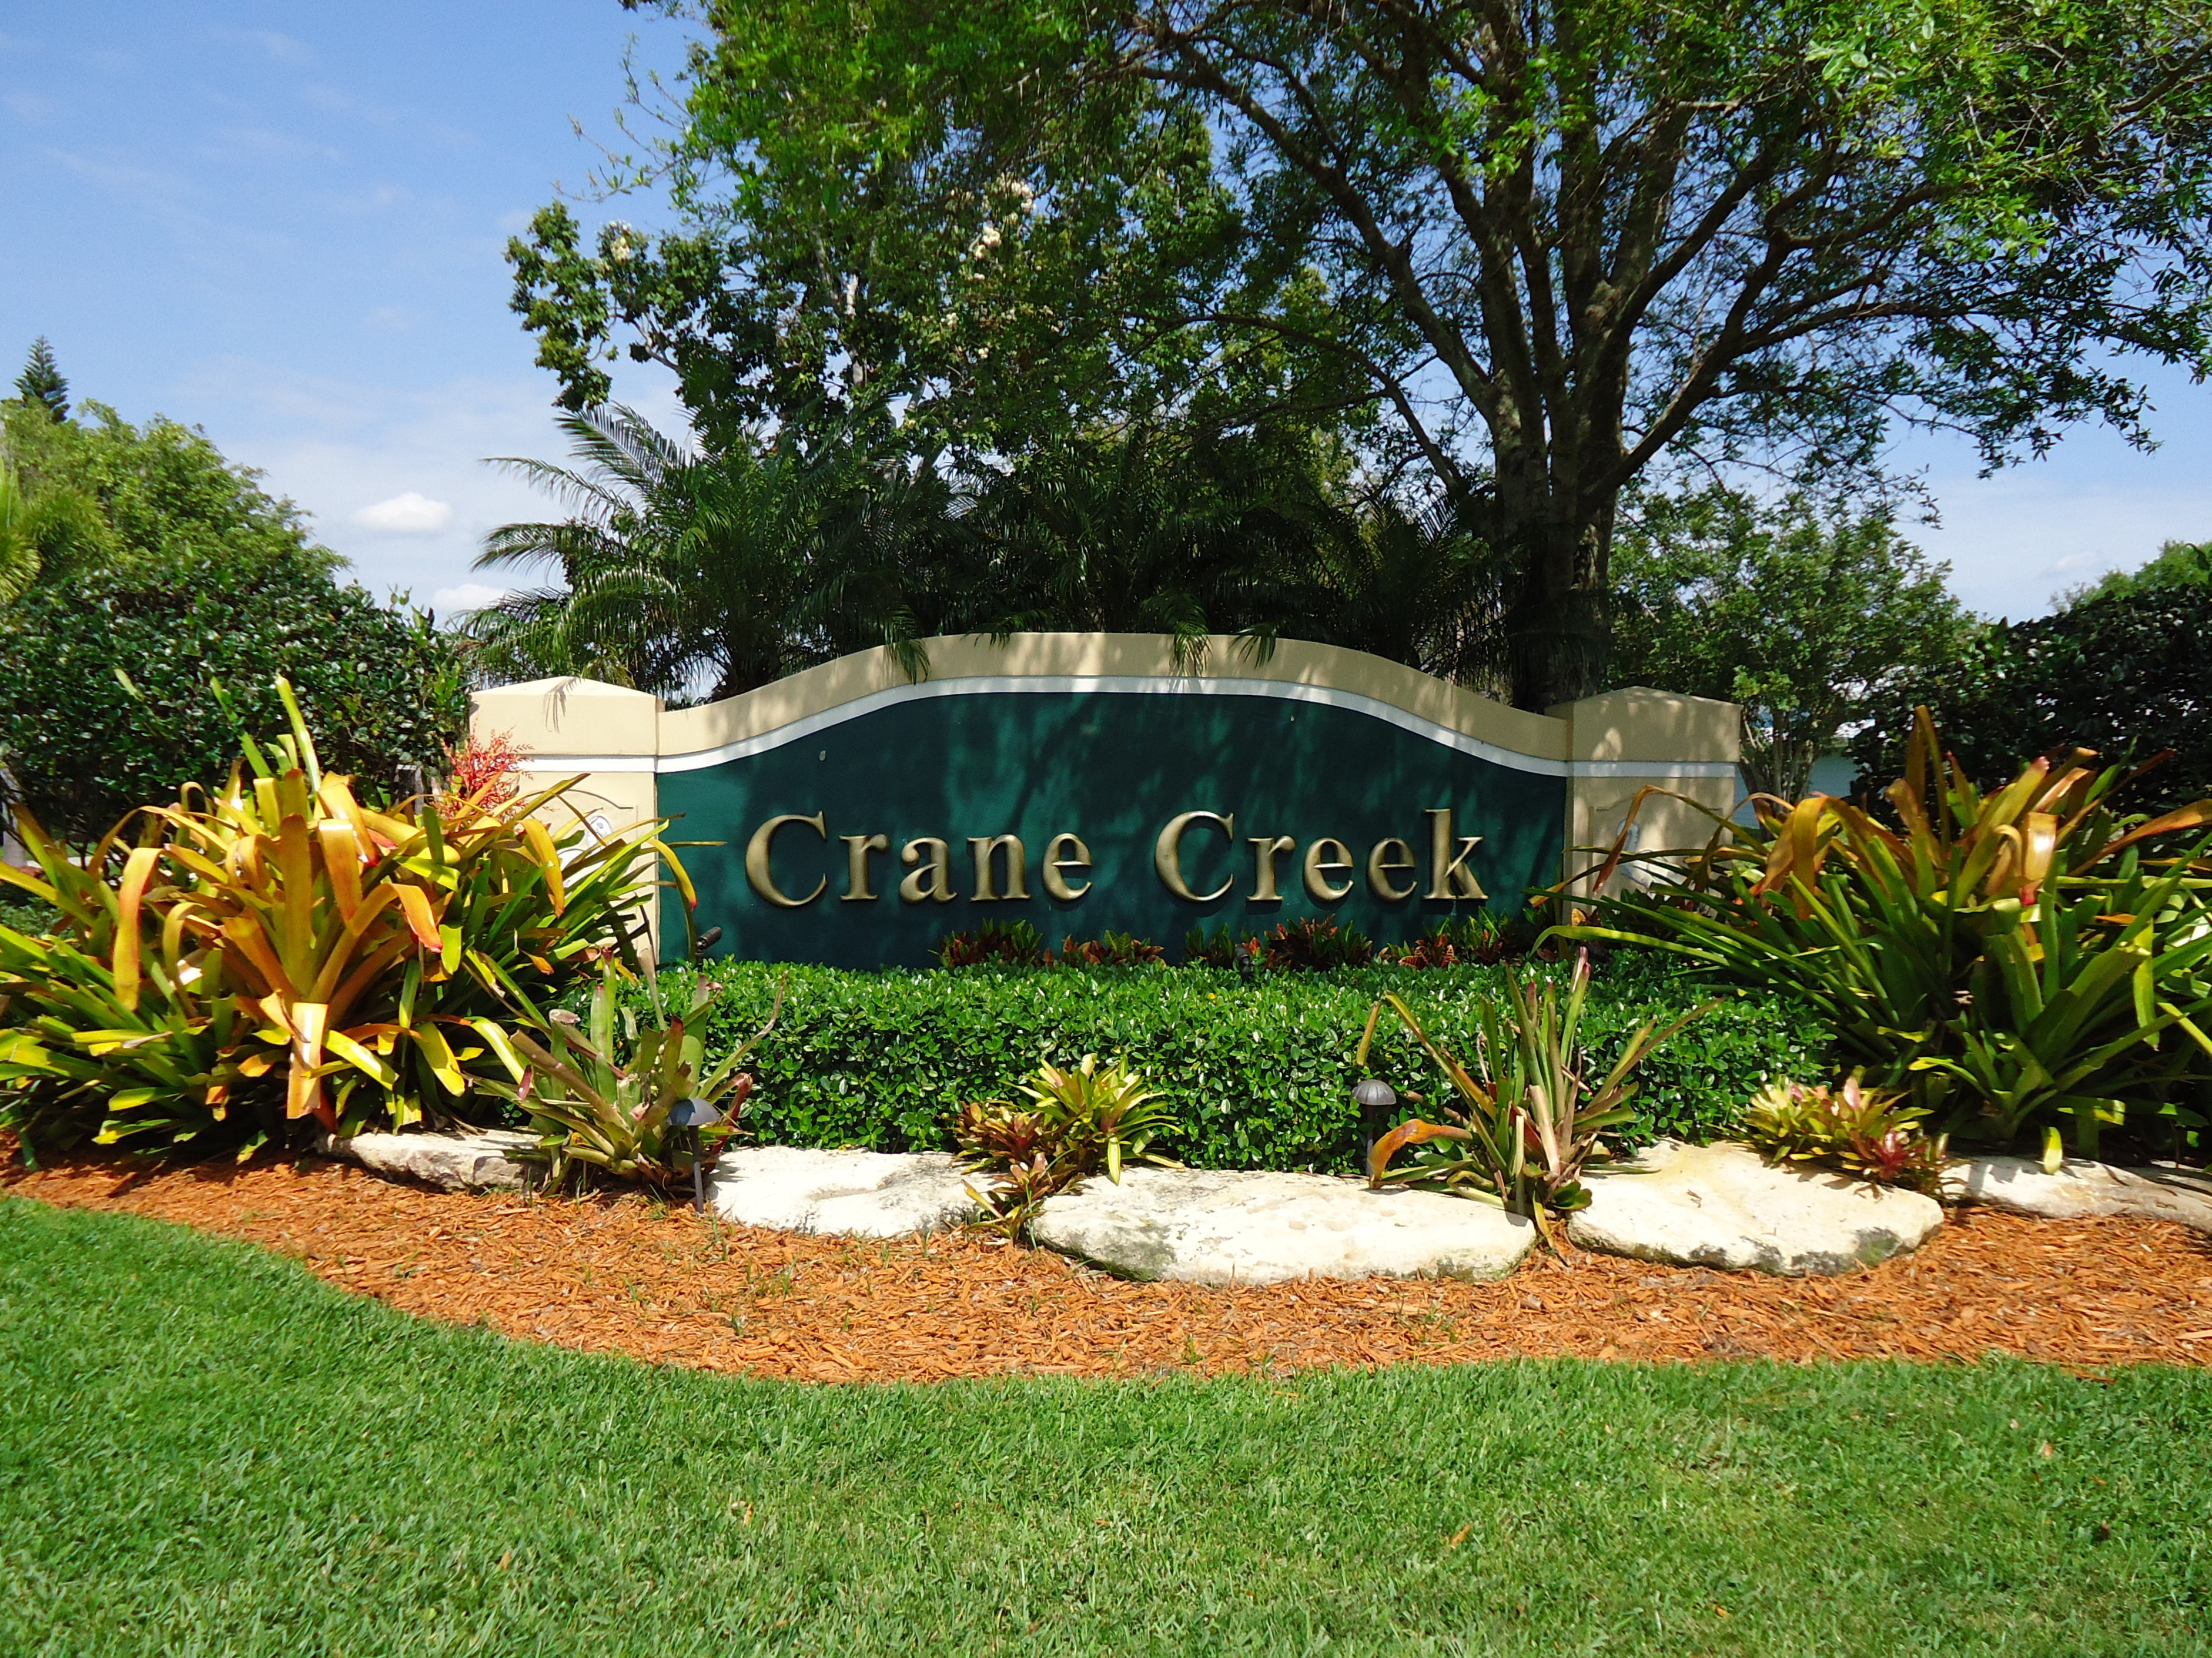 Crane Creek neighborhood sign